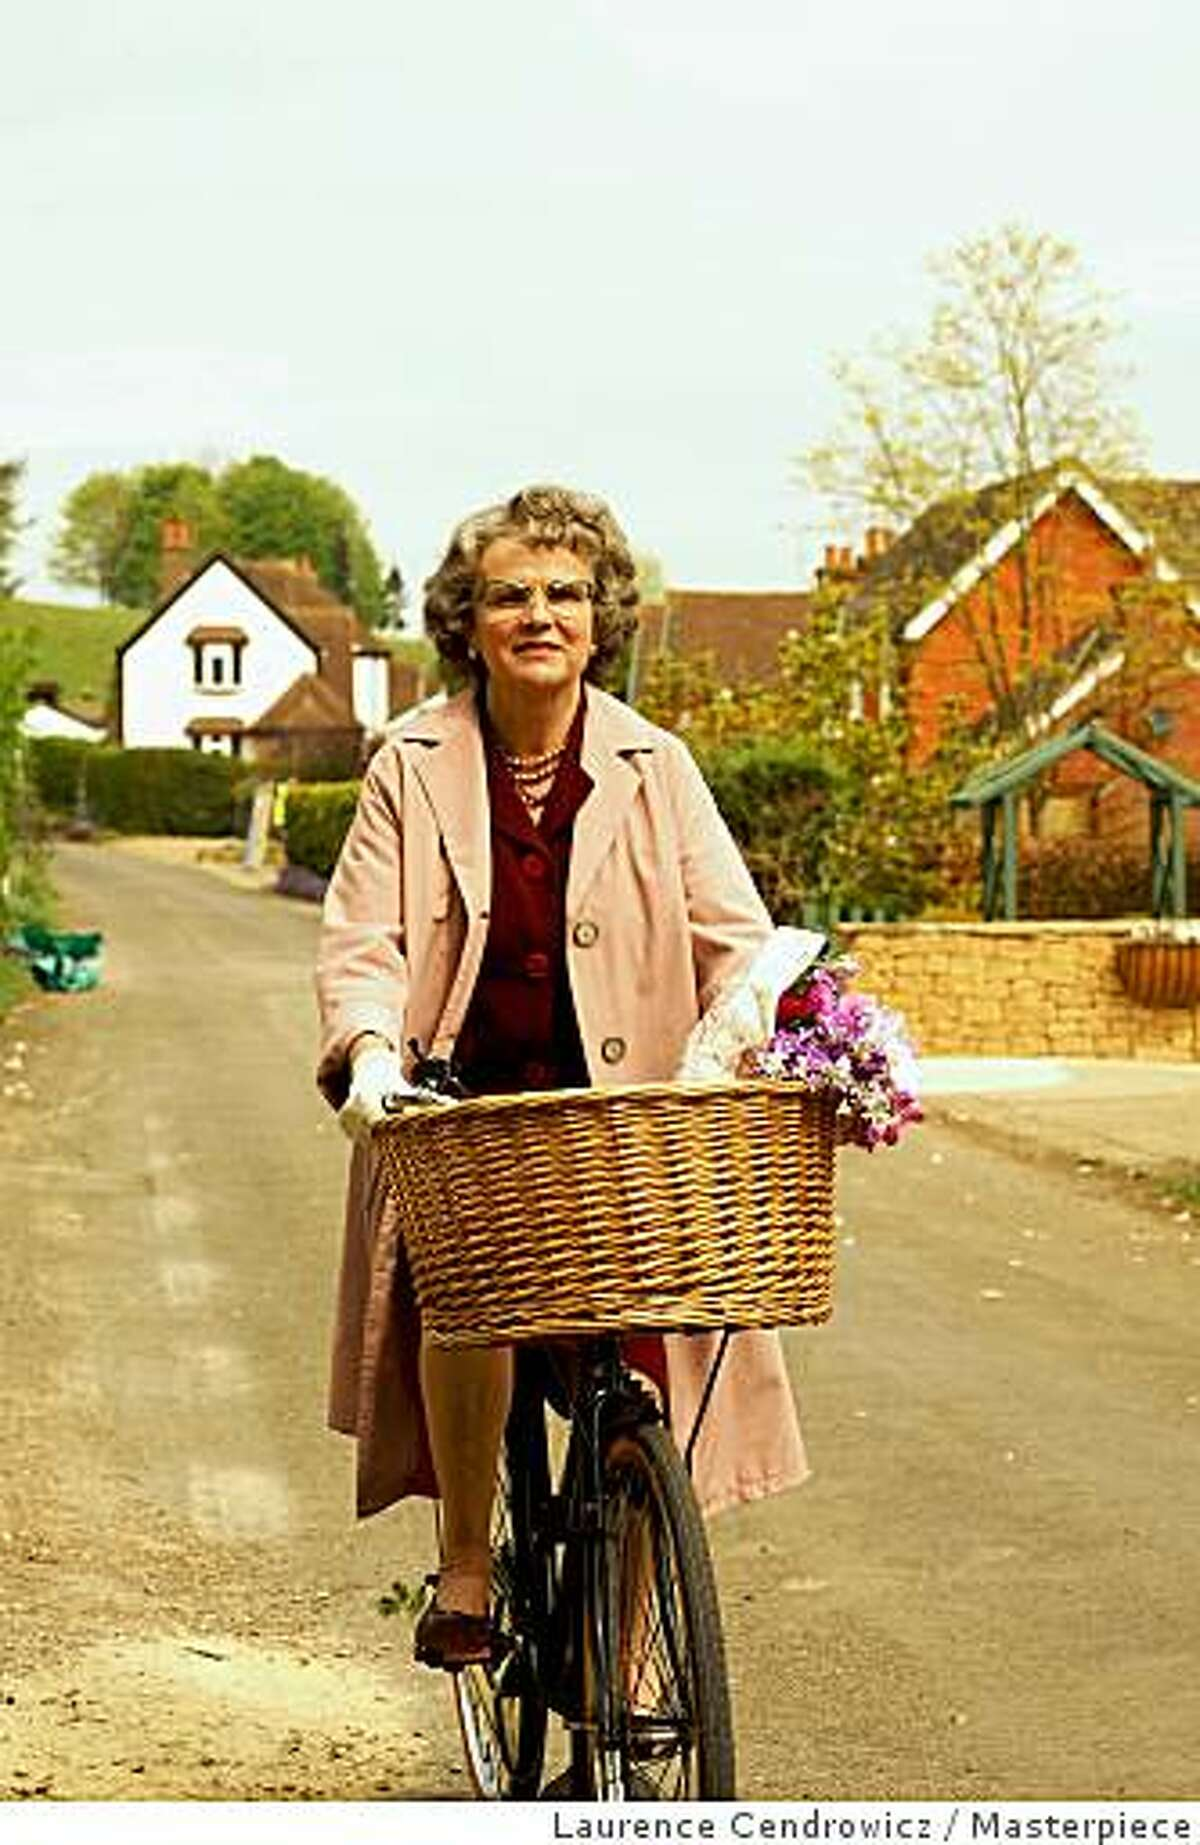 Julie Walters stars as Mary Whitehouse in the true story of a moral watchdog barking at the heels of swinging England in the 1960s.